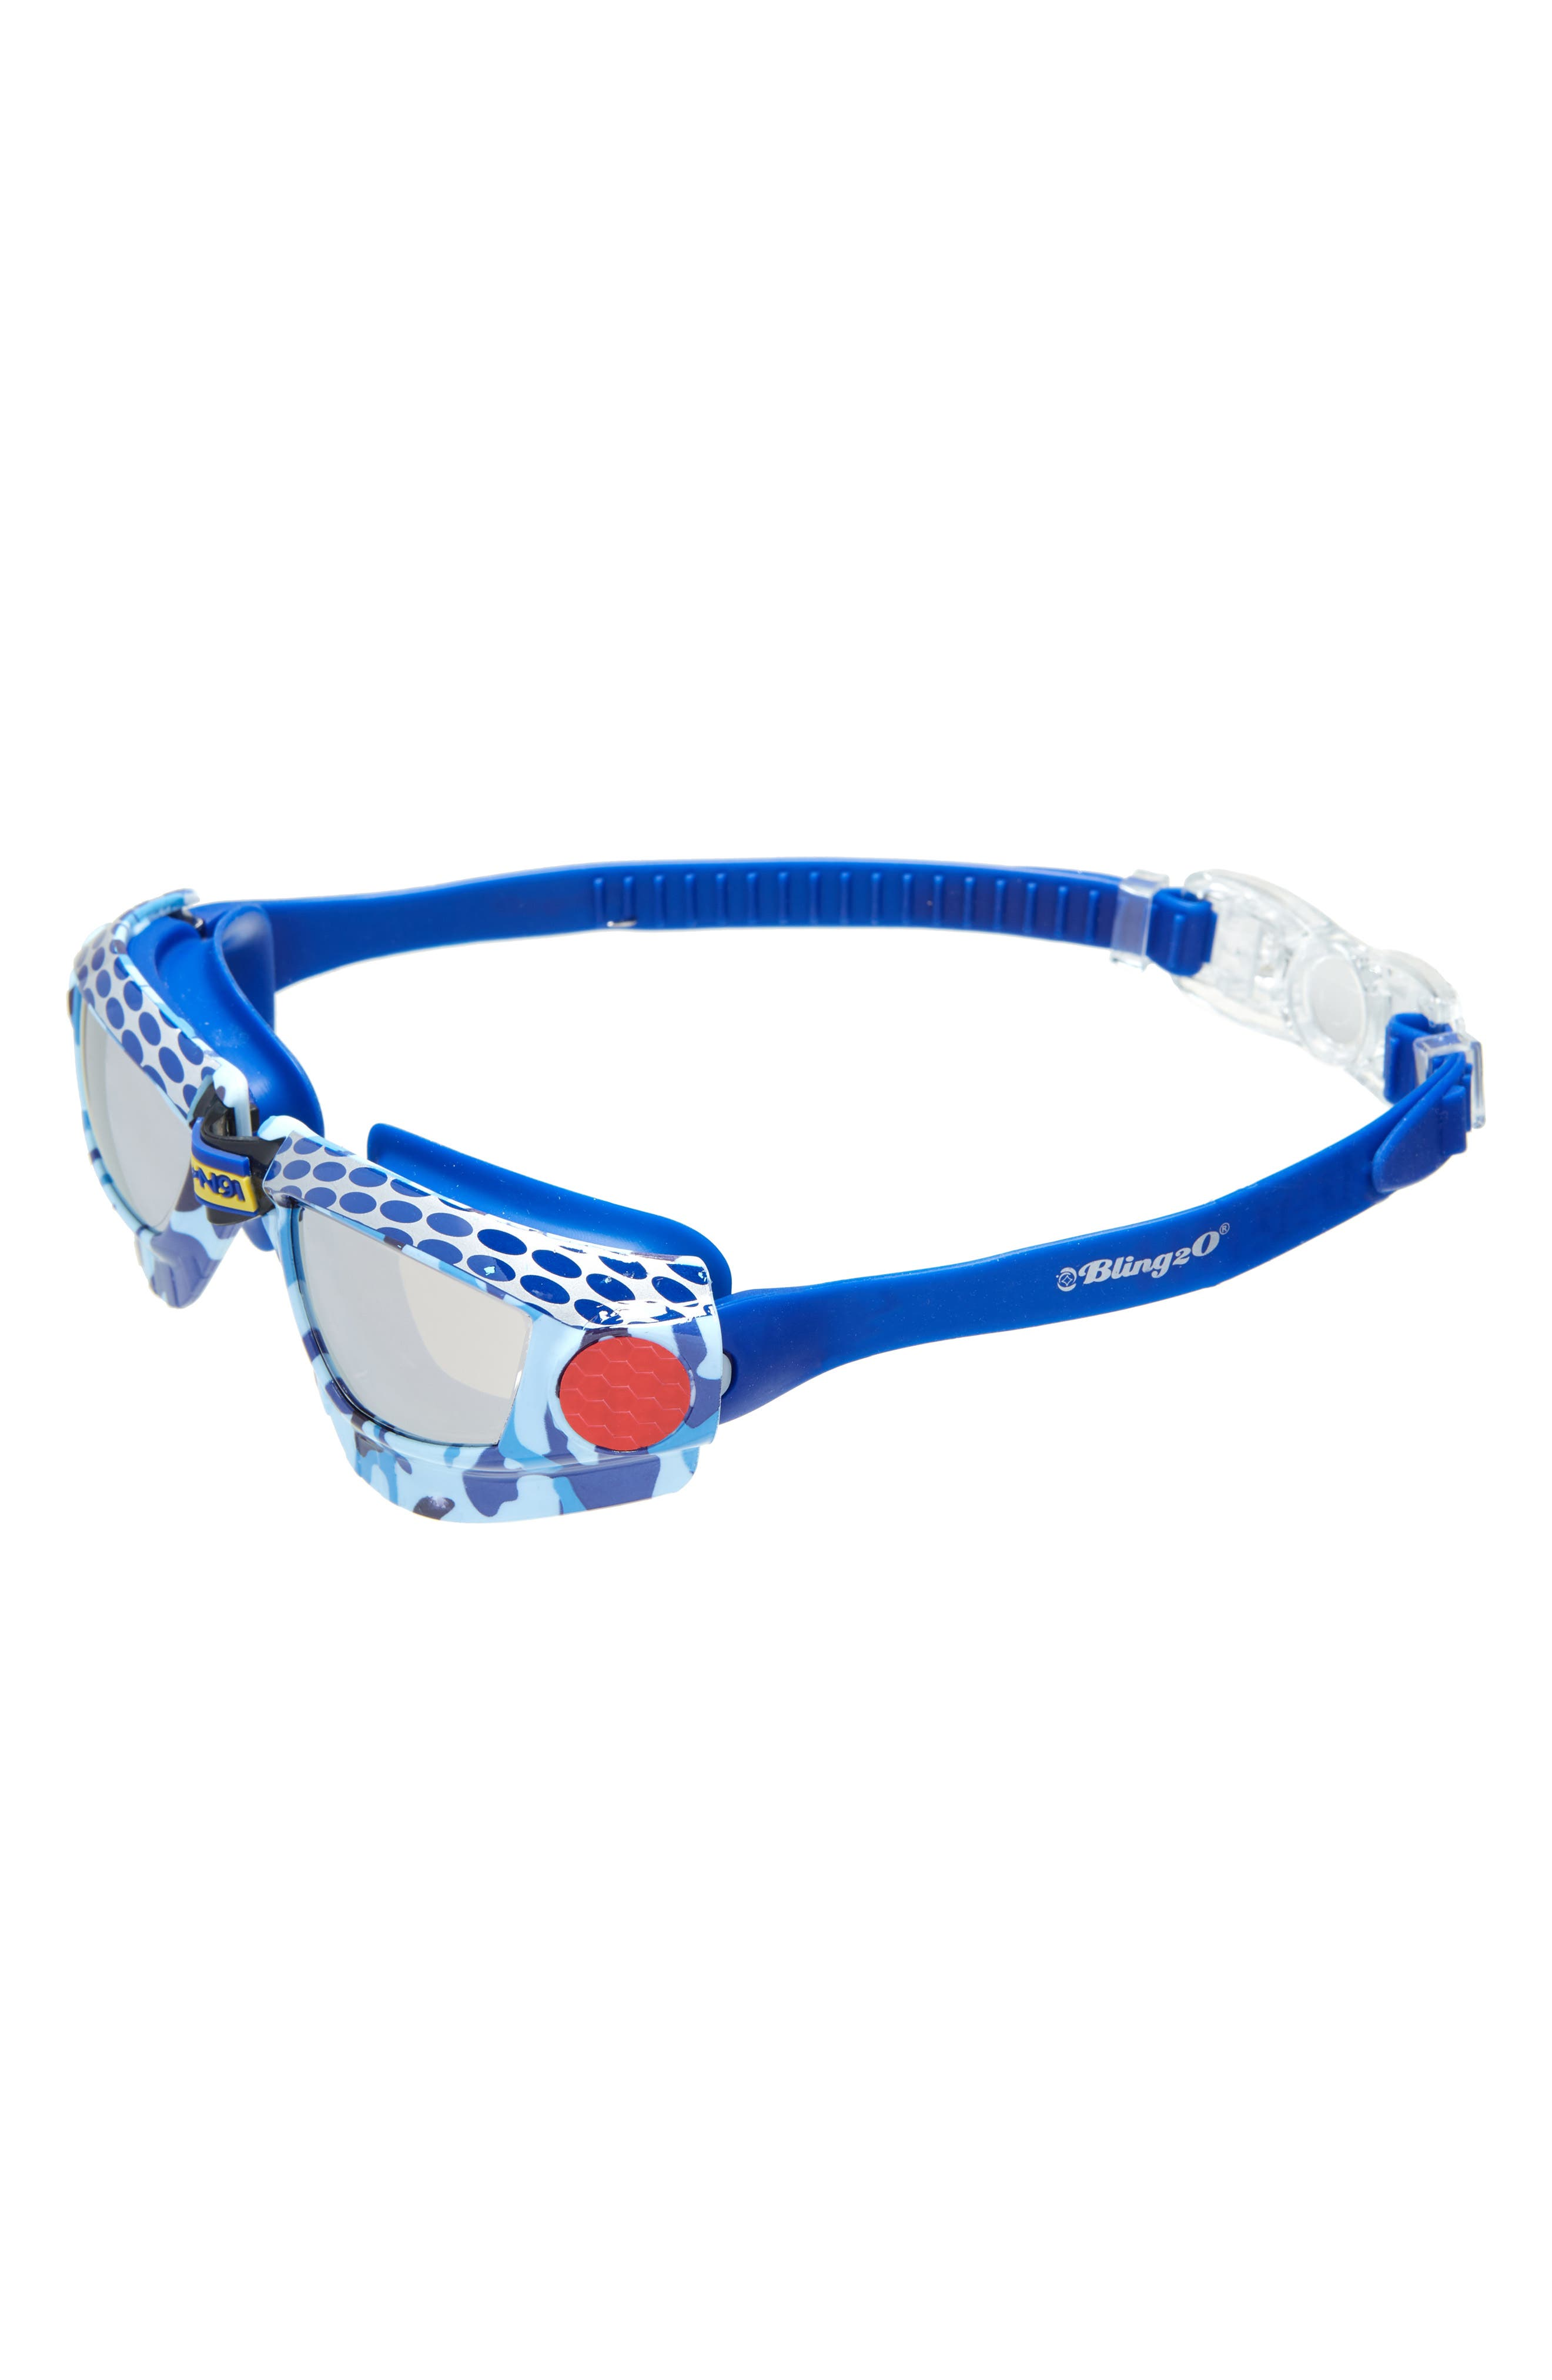 Mud Racer Swim Goggles,                             Main thumbnail 1, color,                             Blue